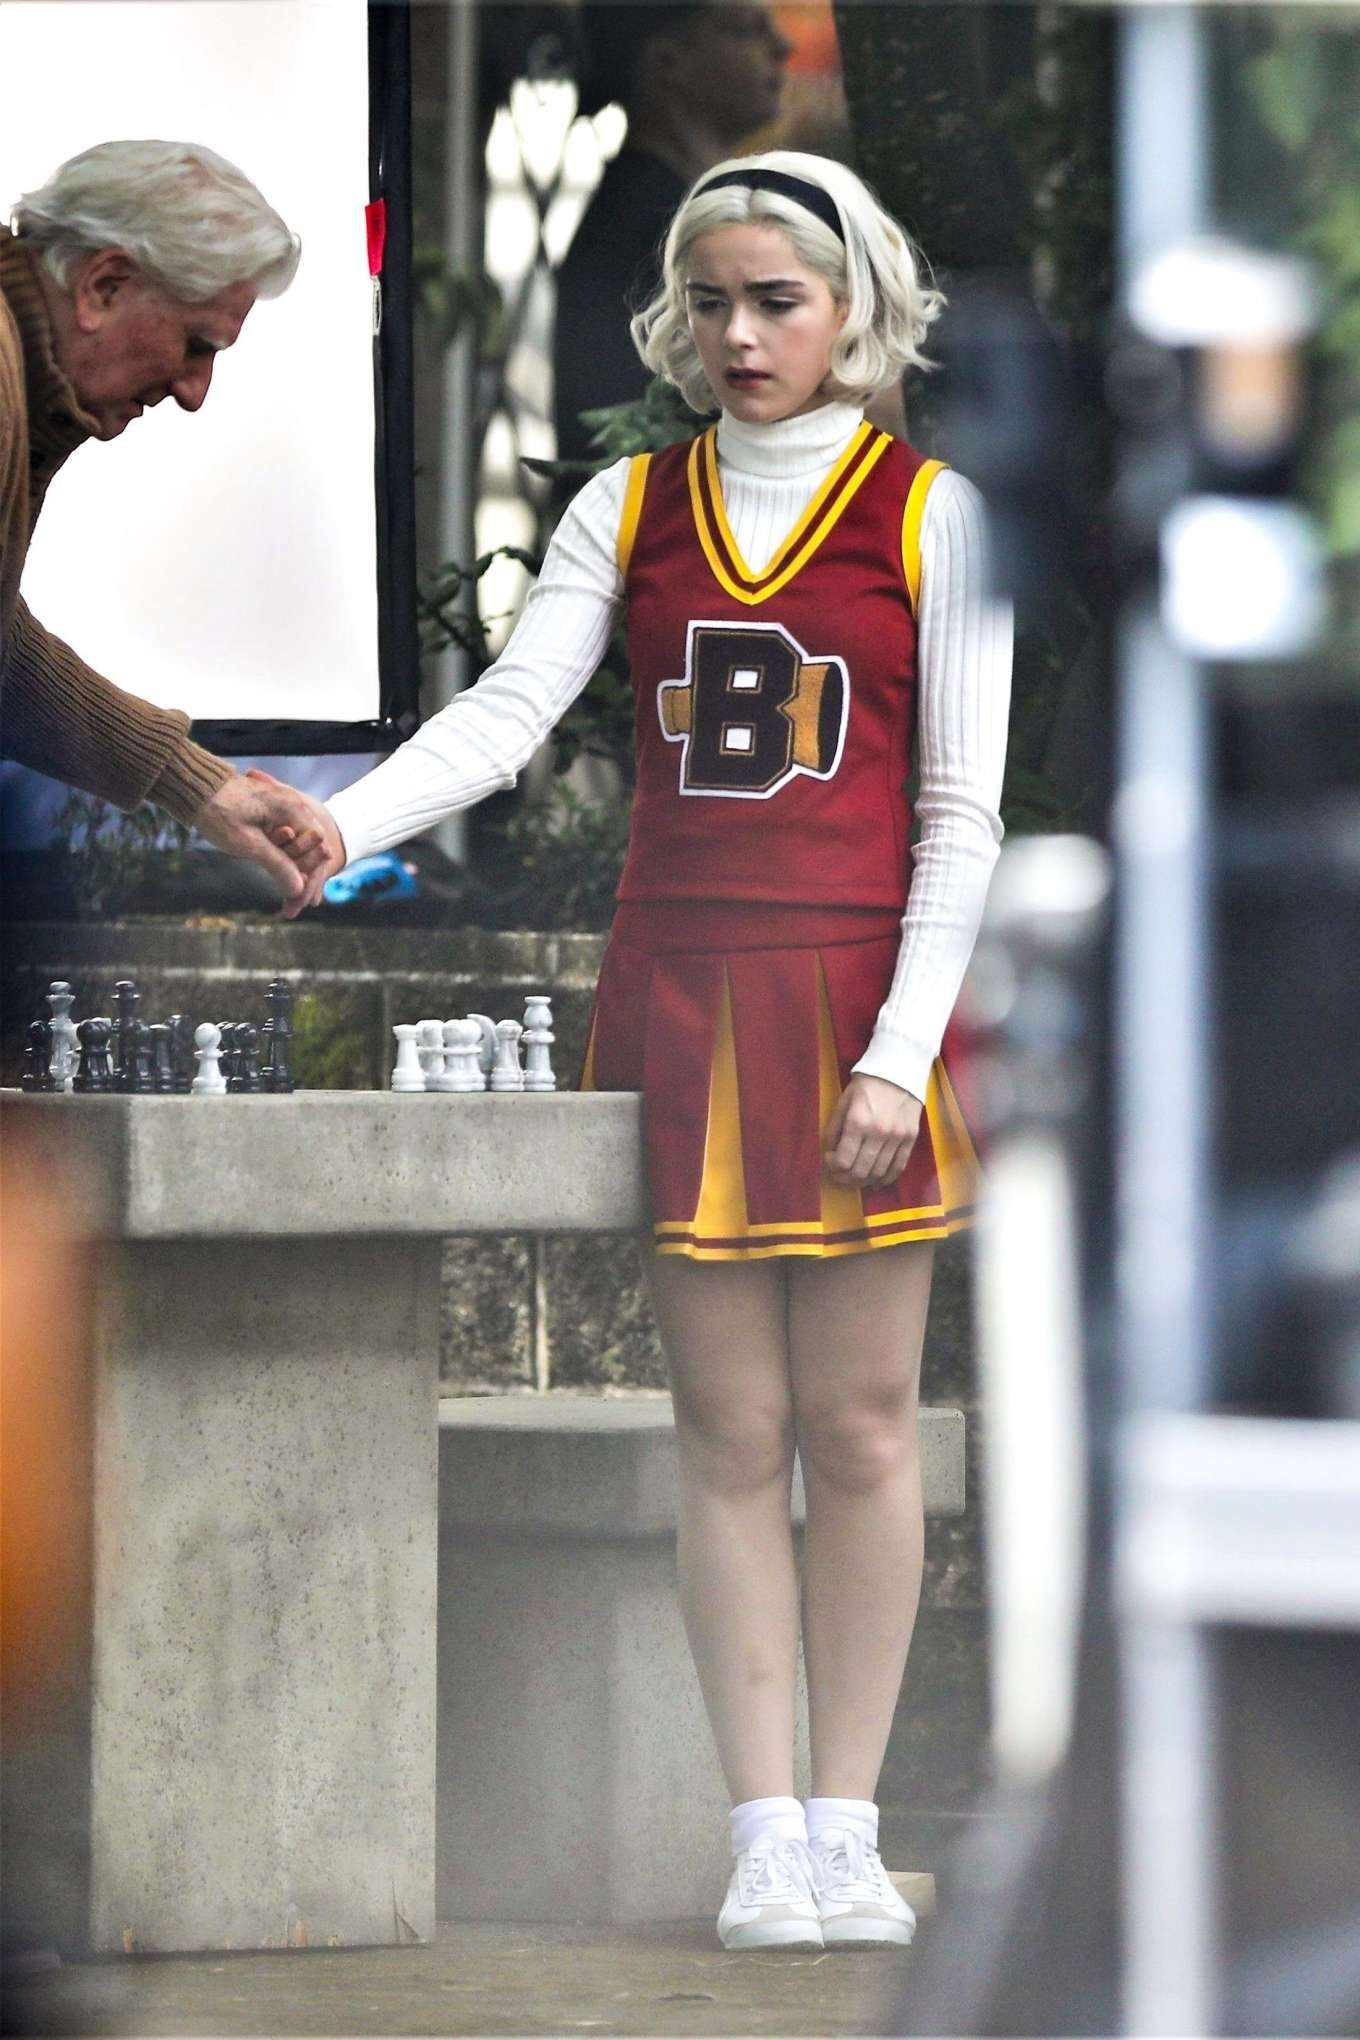 Kiernan Shipka - On the set of 'Chilling Adventures of Sabrina' in Vancouver